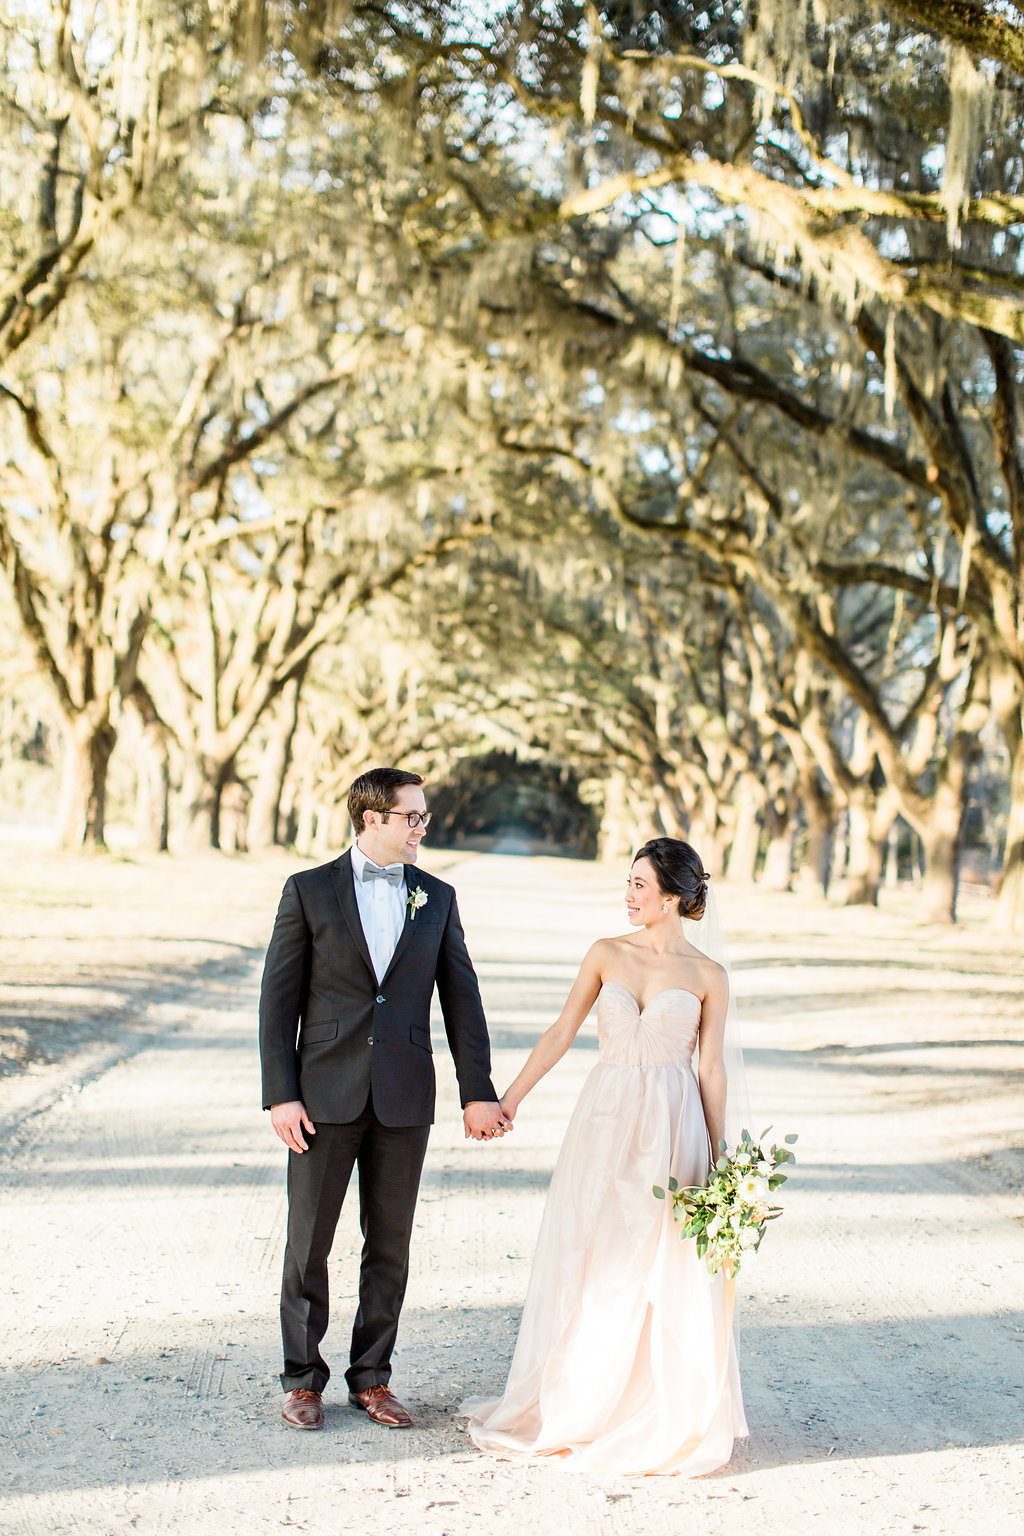 the-happy-bloom-design-studio-south-wormsloe-plantation-wedding-sarah-seven-blushing-ivory-and-beau-bridal-boutique-savannah-wedding-dresses-savannah-bridal-boutique-savannah-weddings-savannah-wedding-planner-savannah-event-planner-27.jpg